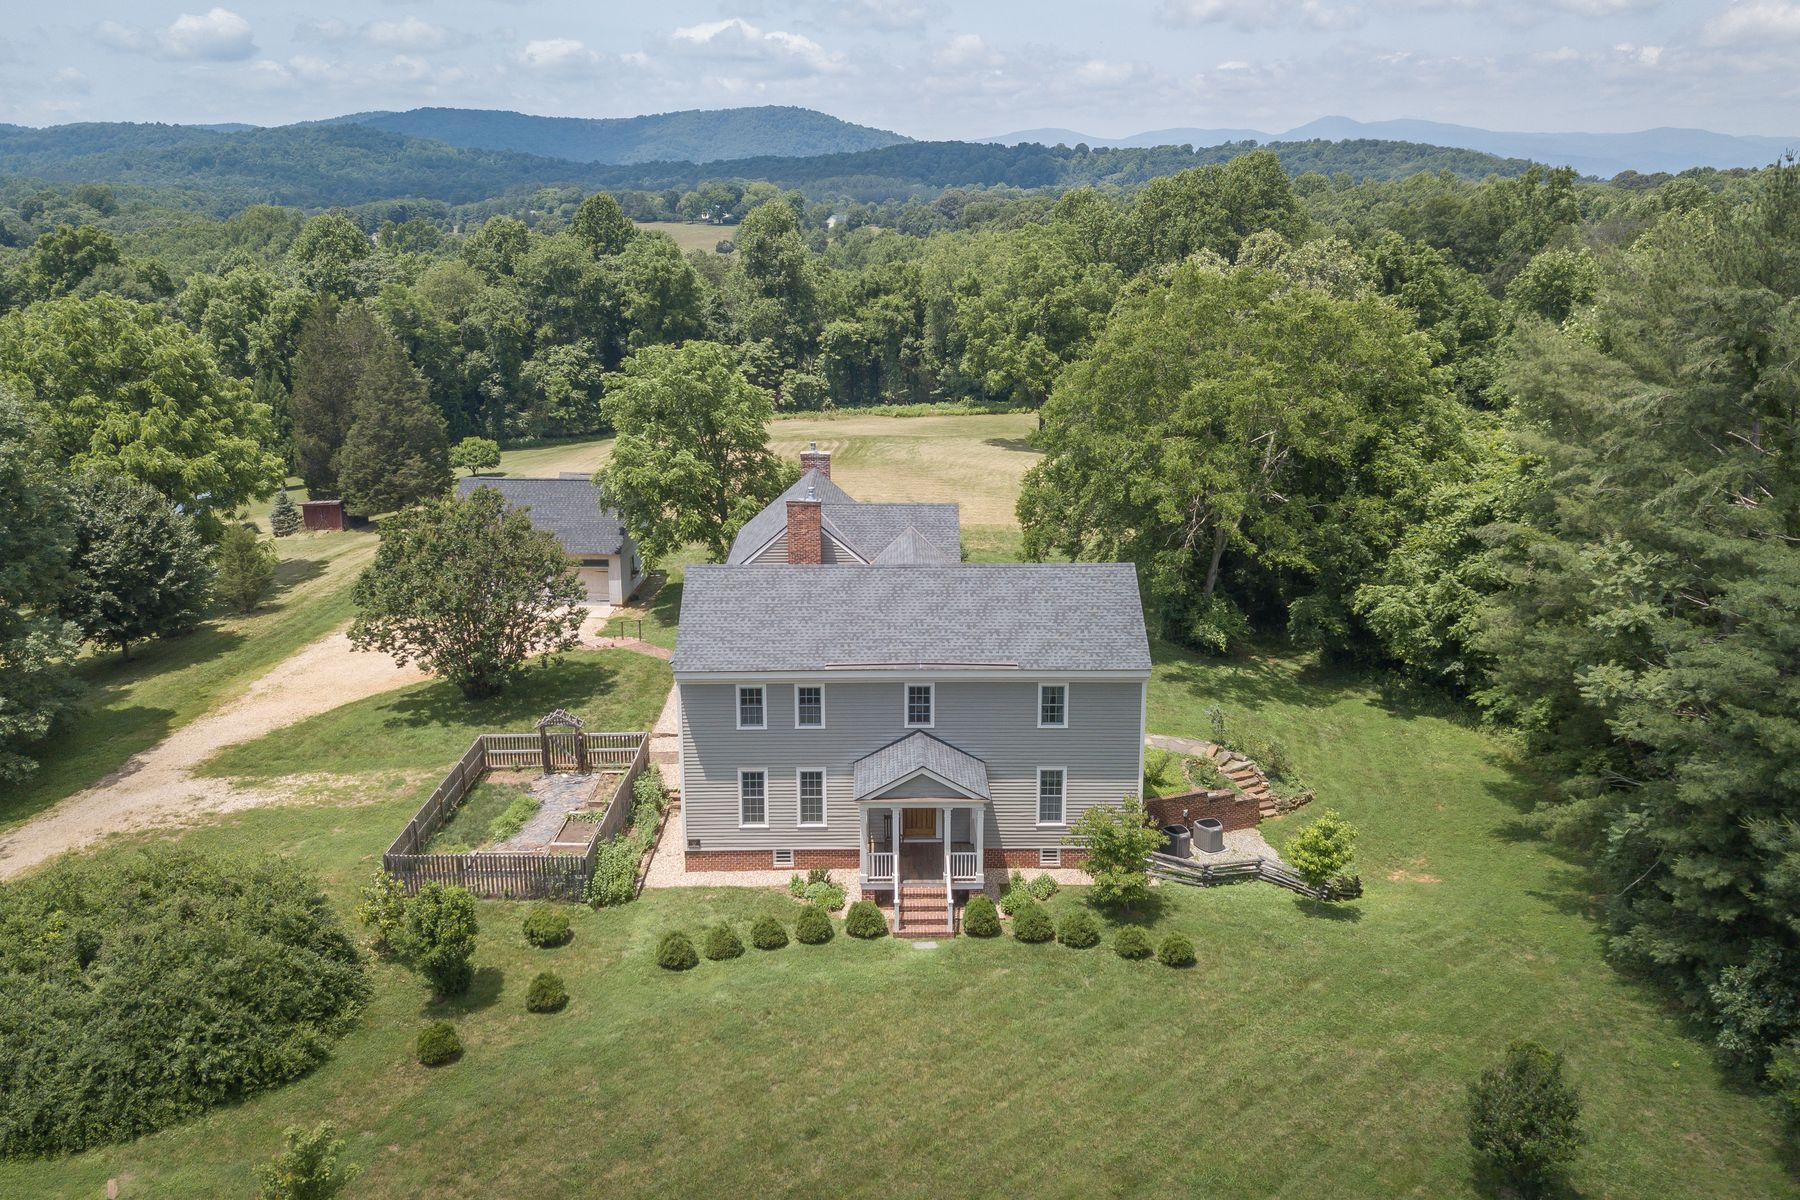 Single Family Homes for Sale at Joyner-Fogus House 230 Waughs Ferry Rd, Amherst, Virginia 24521 United States